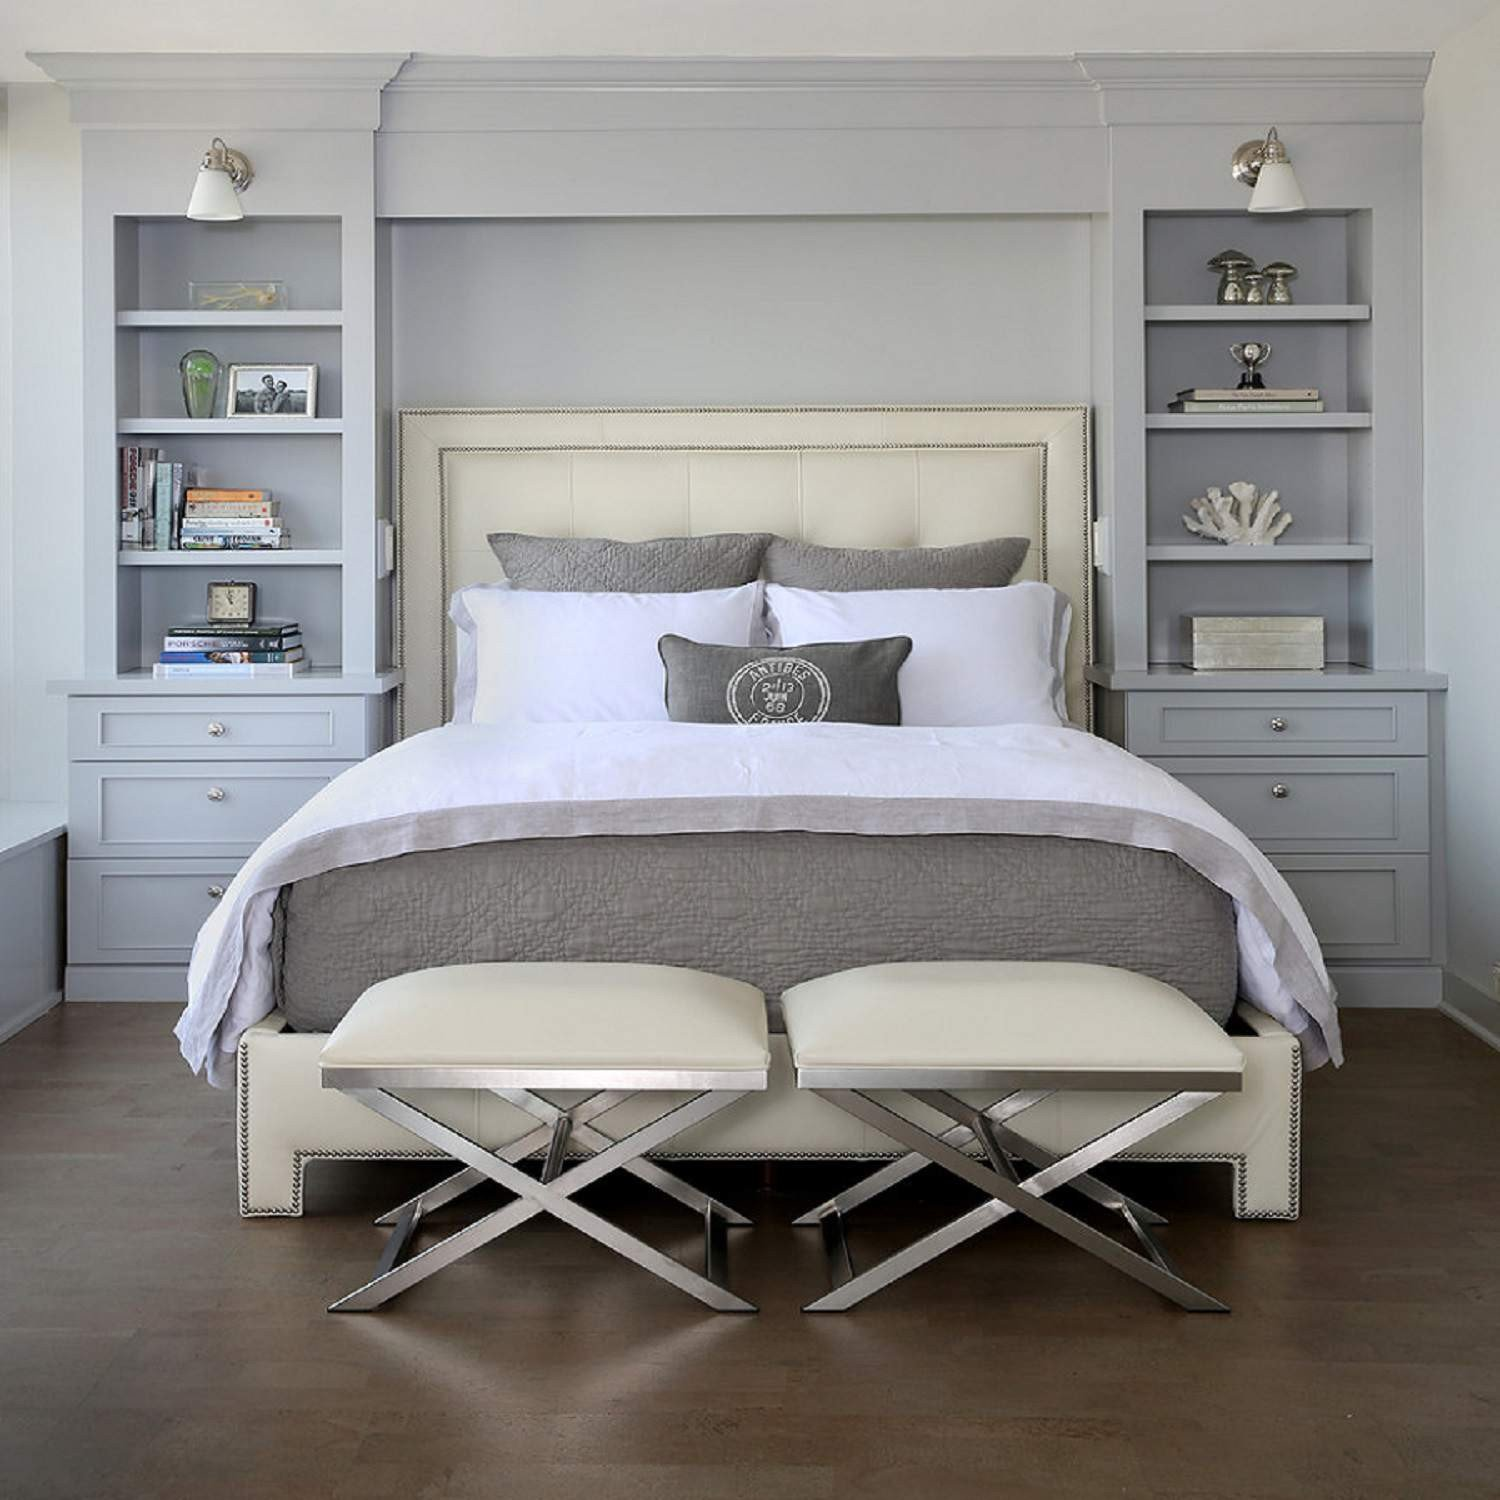 12x12 Bedroom Furniture Layout Luxury Small Master Bedroom Design Ideas Tips and S